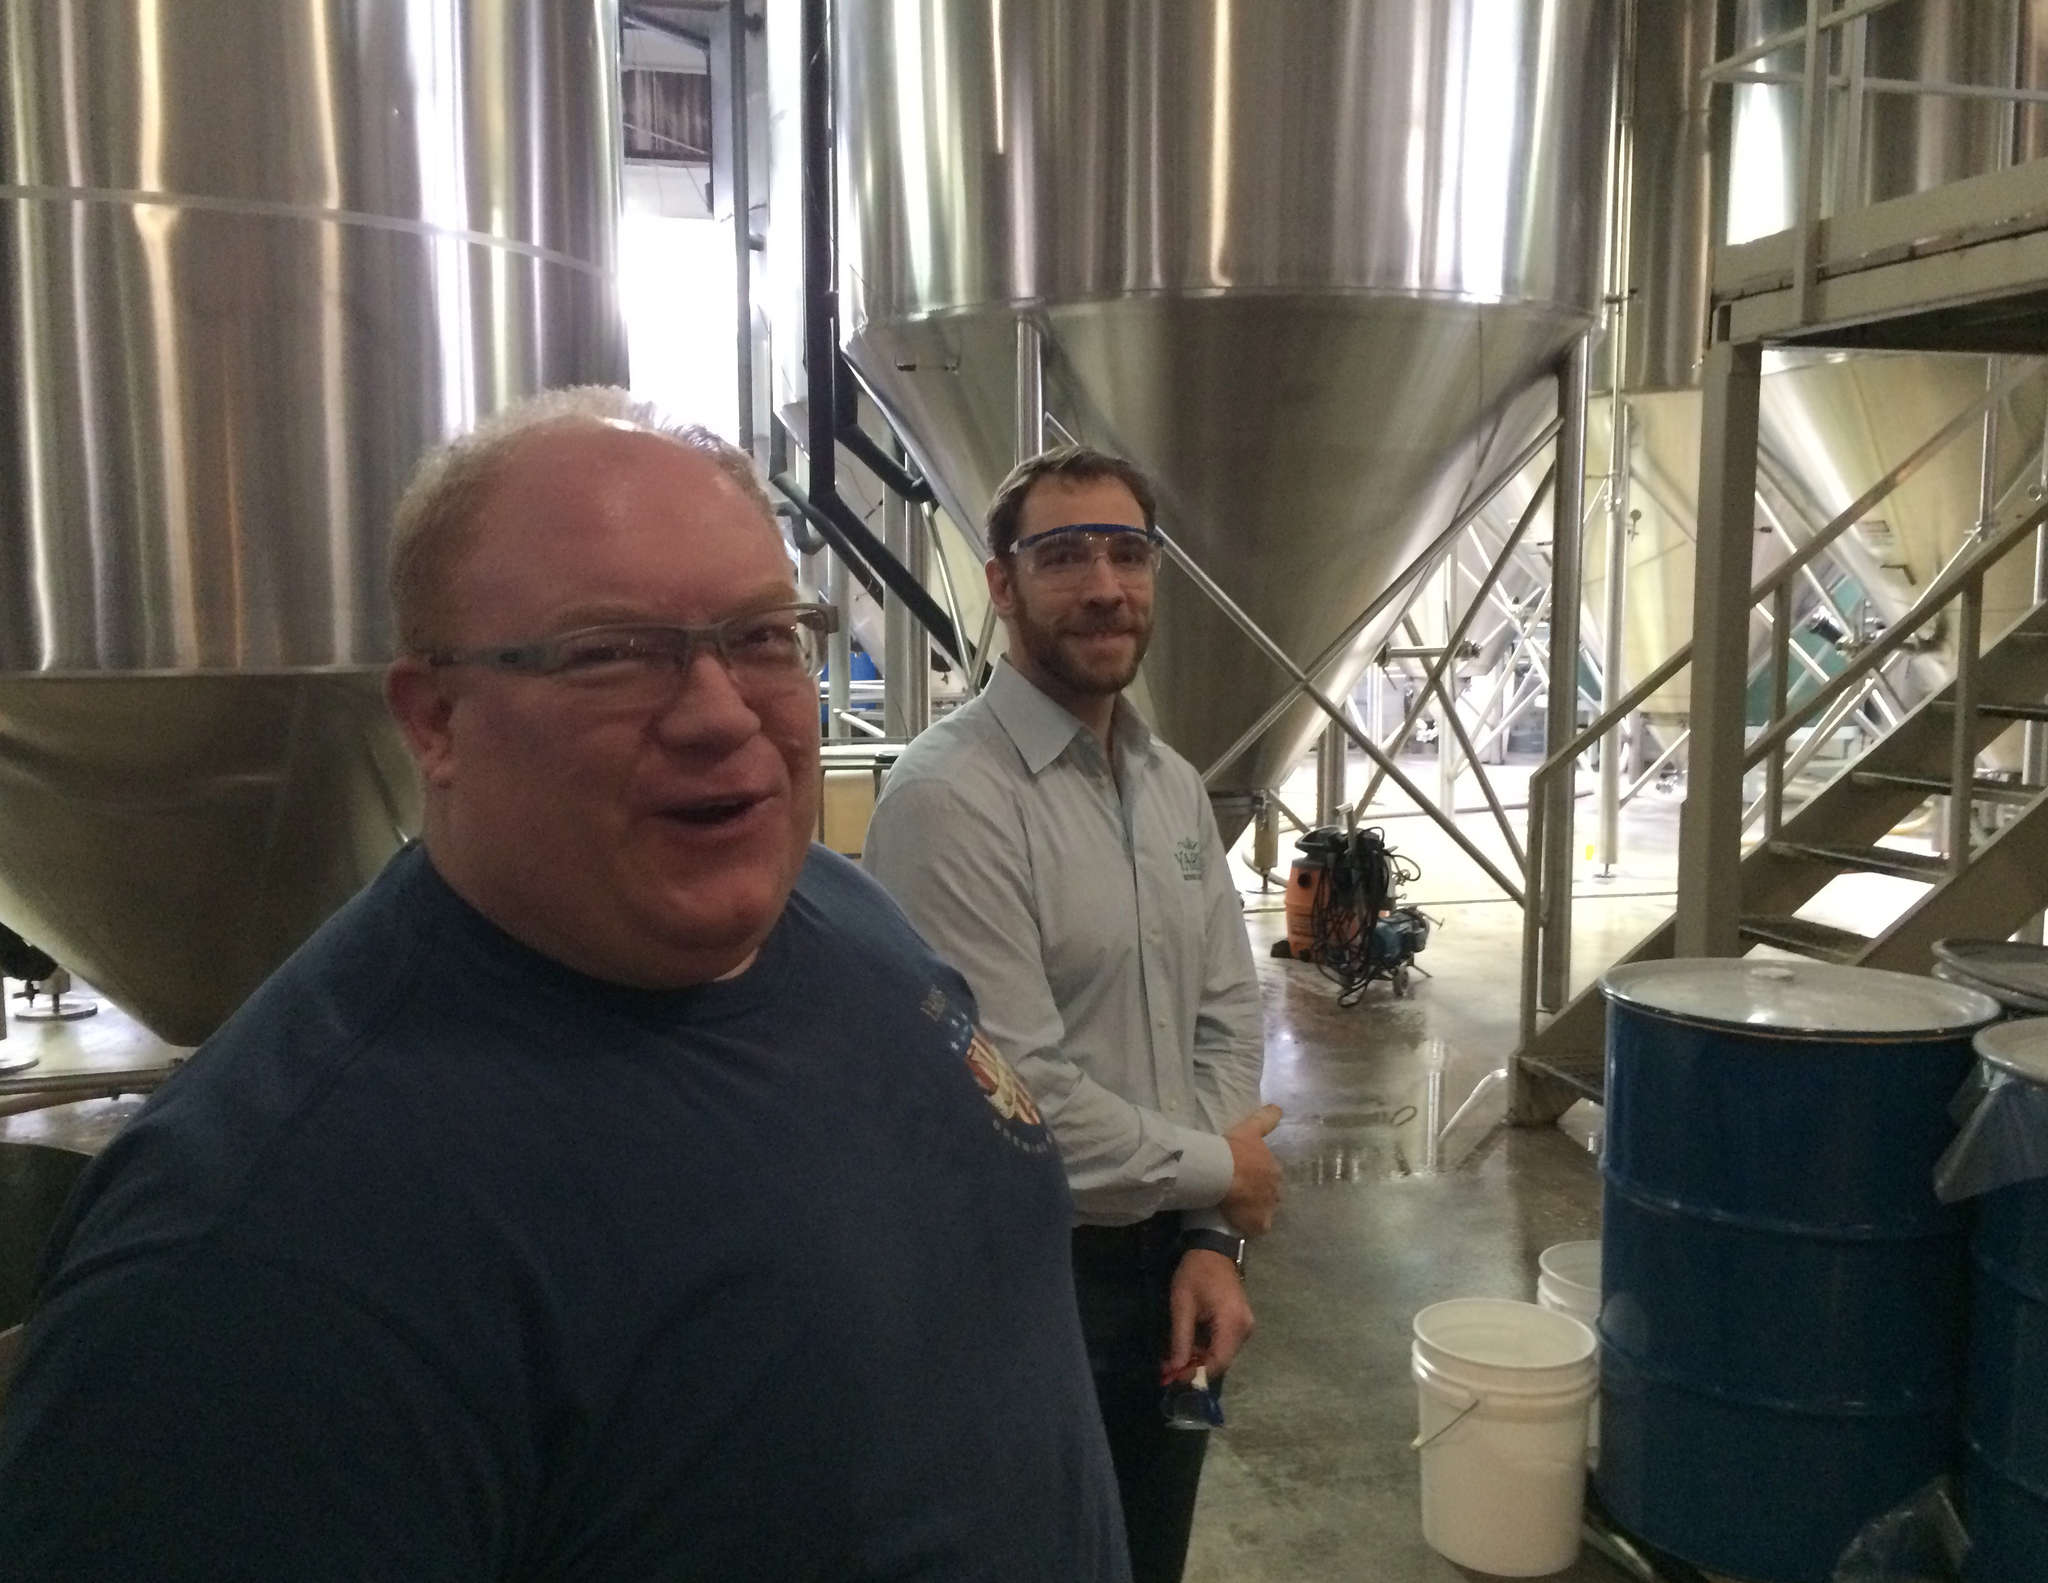 Yards Brewing president Tom Kehoe (left) and chief operating officer Trevor Prichett at their plant in Northern Liberties. Yards hopes to move, if it can find space near Center City.